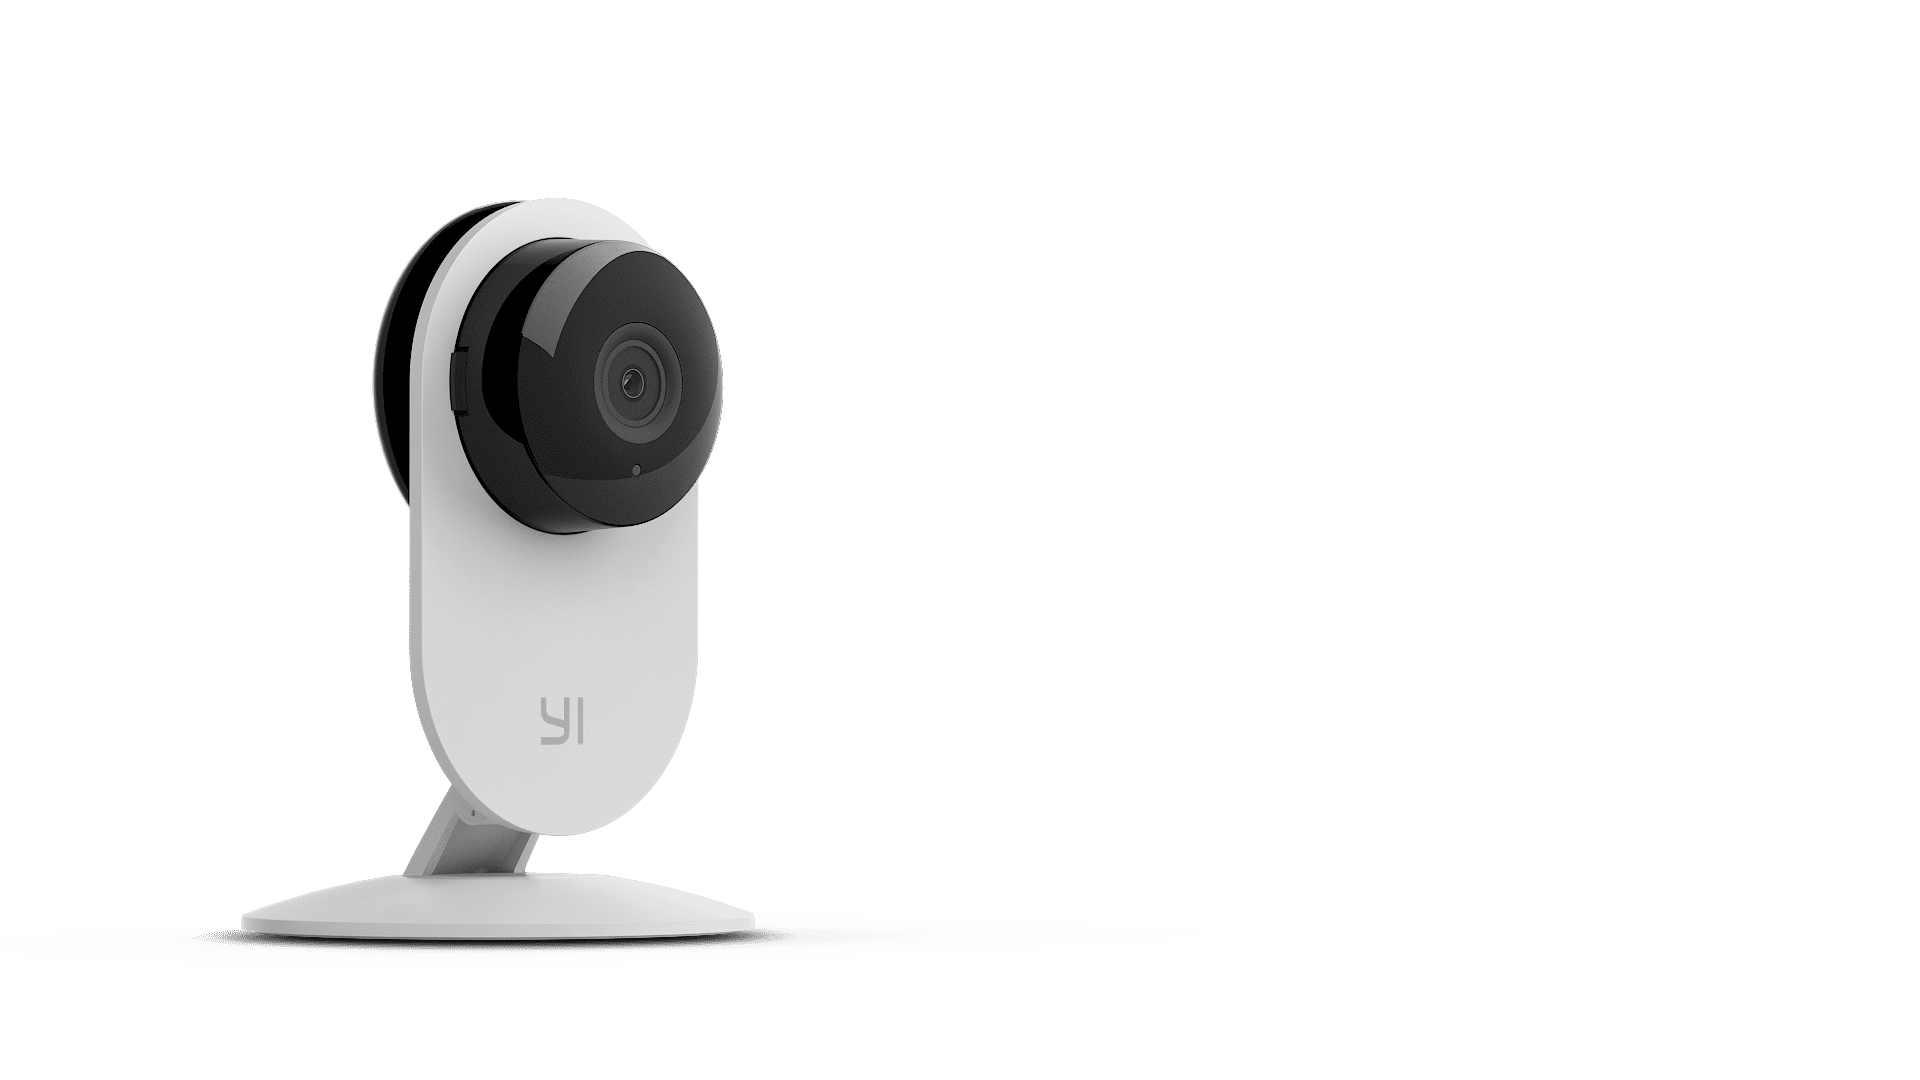 YI Smart Home Static 1080P 130 Micro SD Slot Camera Whit - Syntech